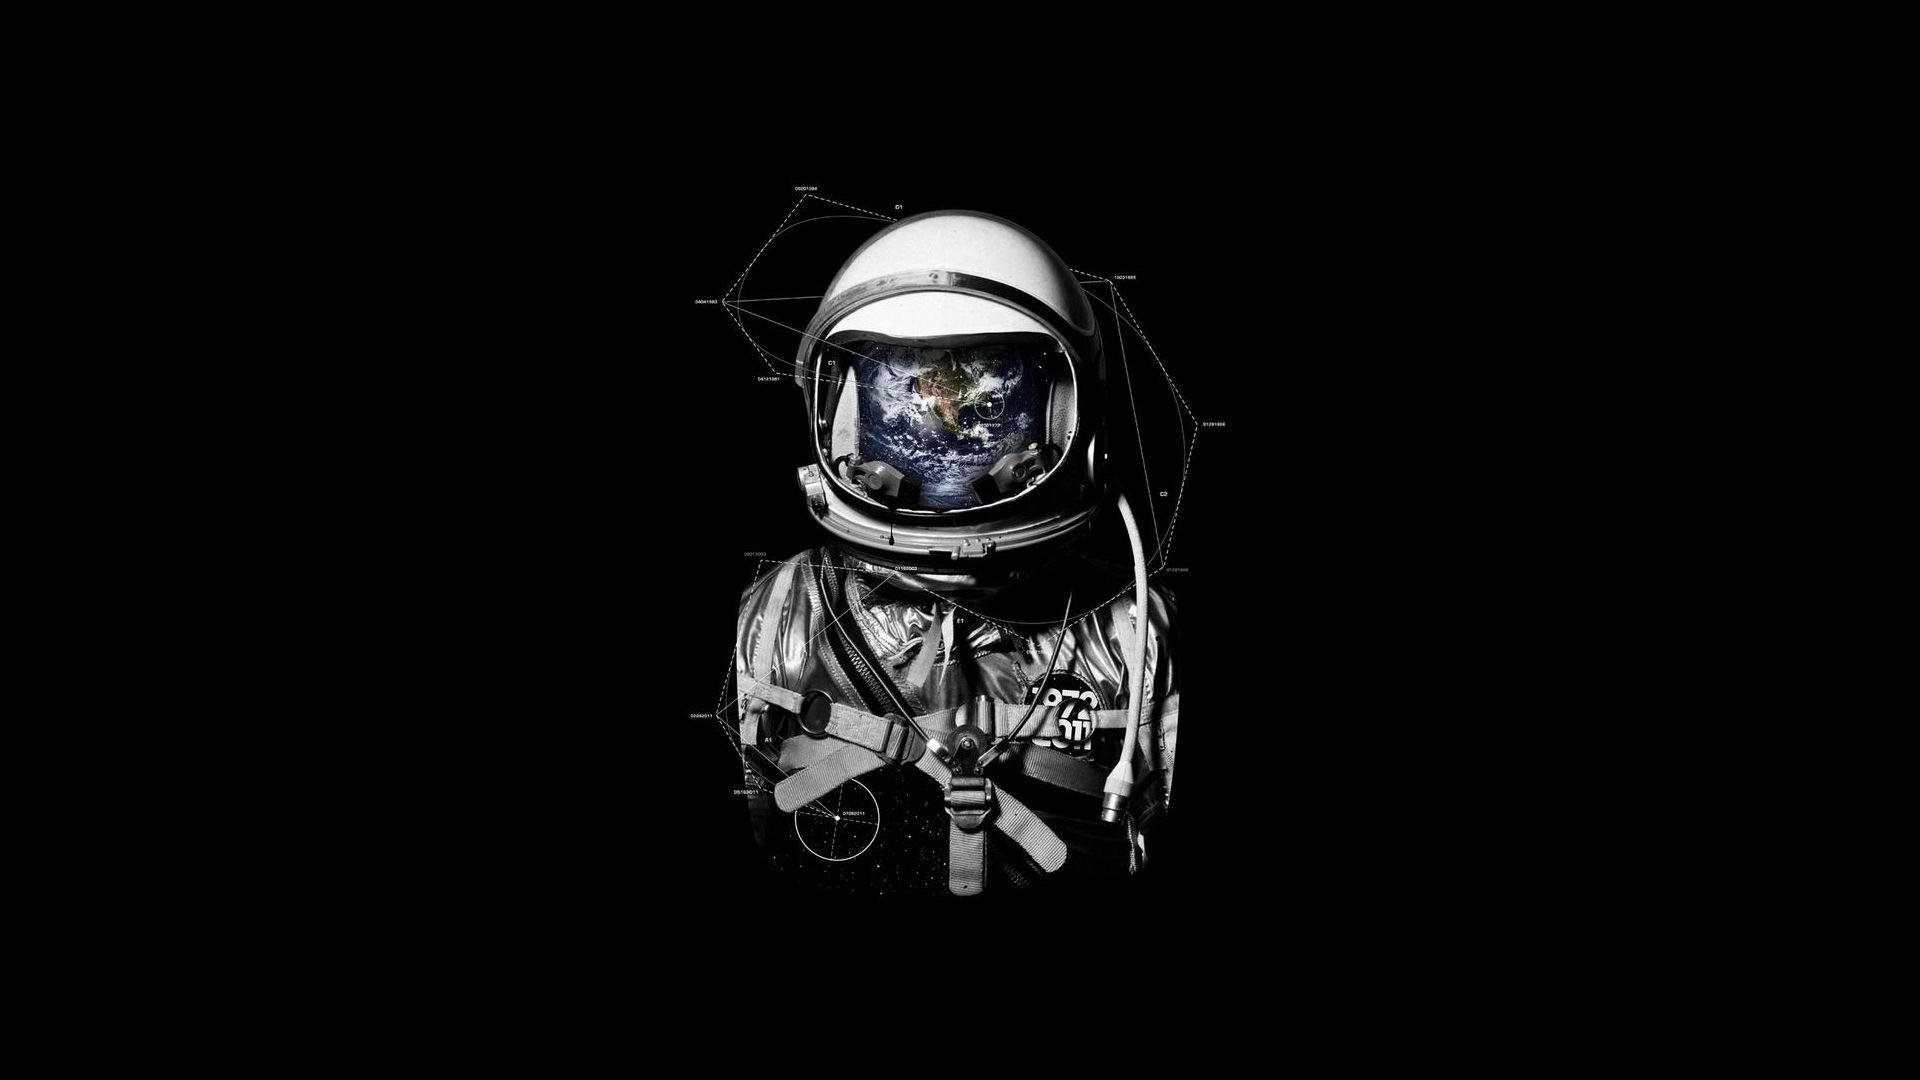 astronaut in space tumblr wallpaper - photo #19